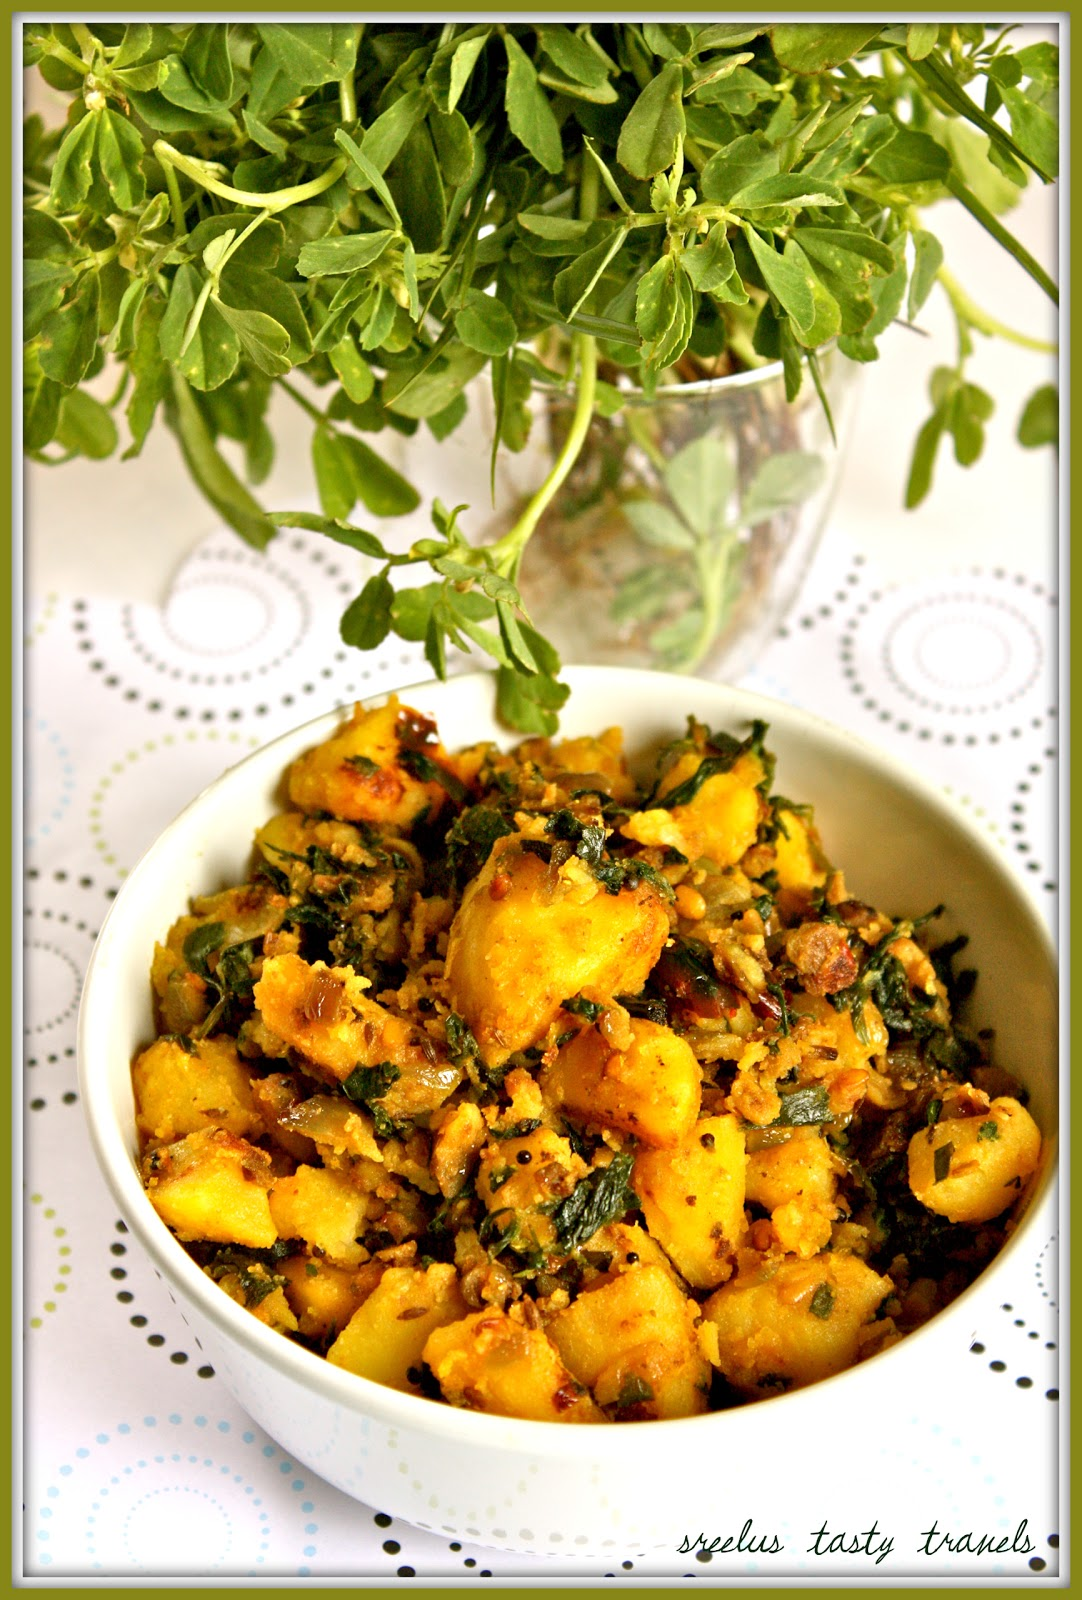 Sreelus Tasty Travels: Aloo Methi - Potatoes With Fenugreek